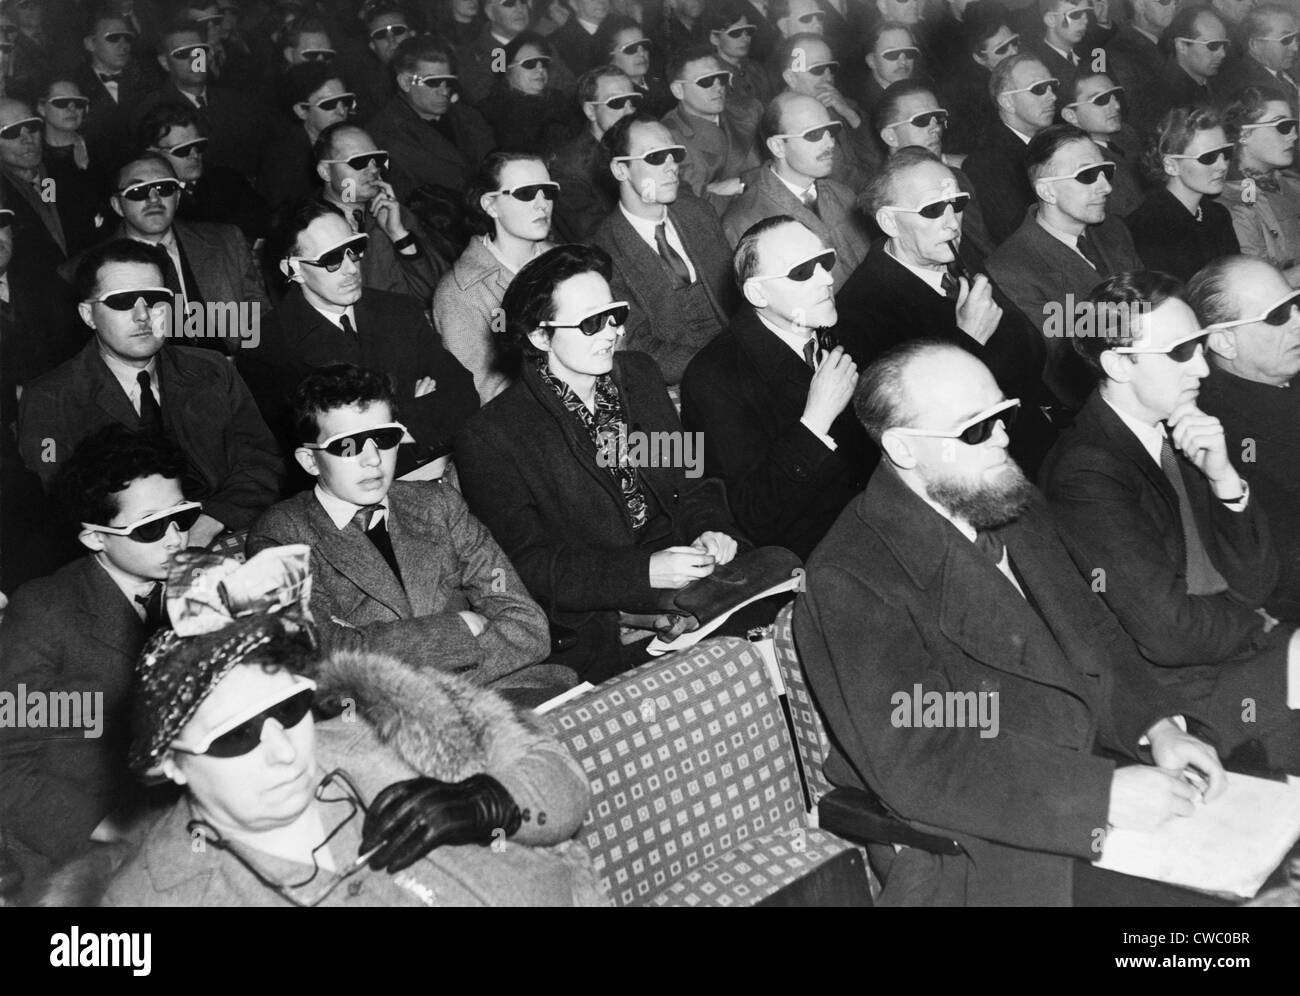 British audience wears smoke-colored glasses to view a 3-D movie in 1954. Stock Photo